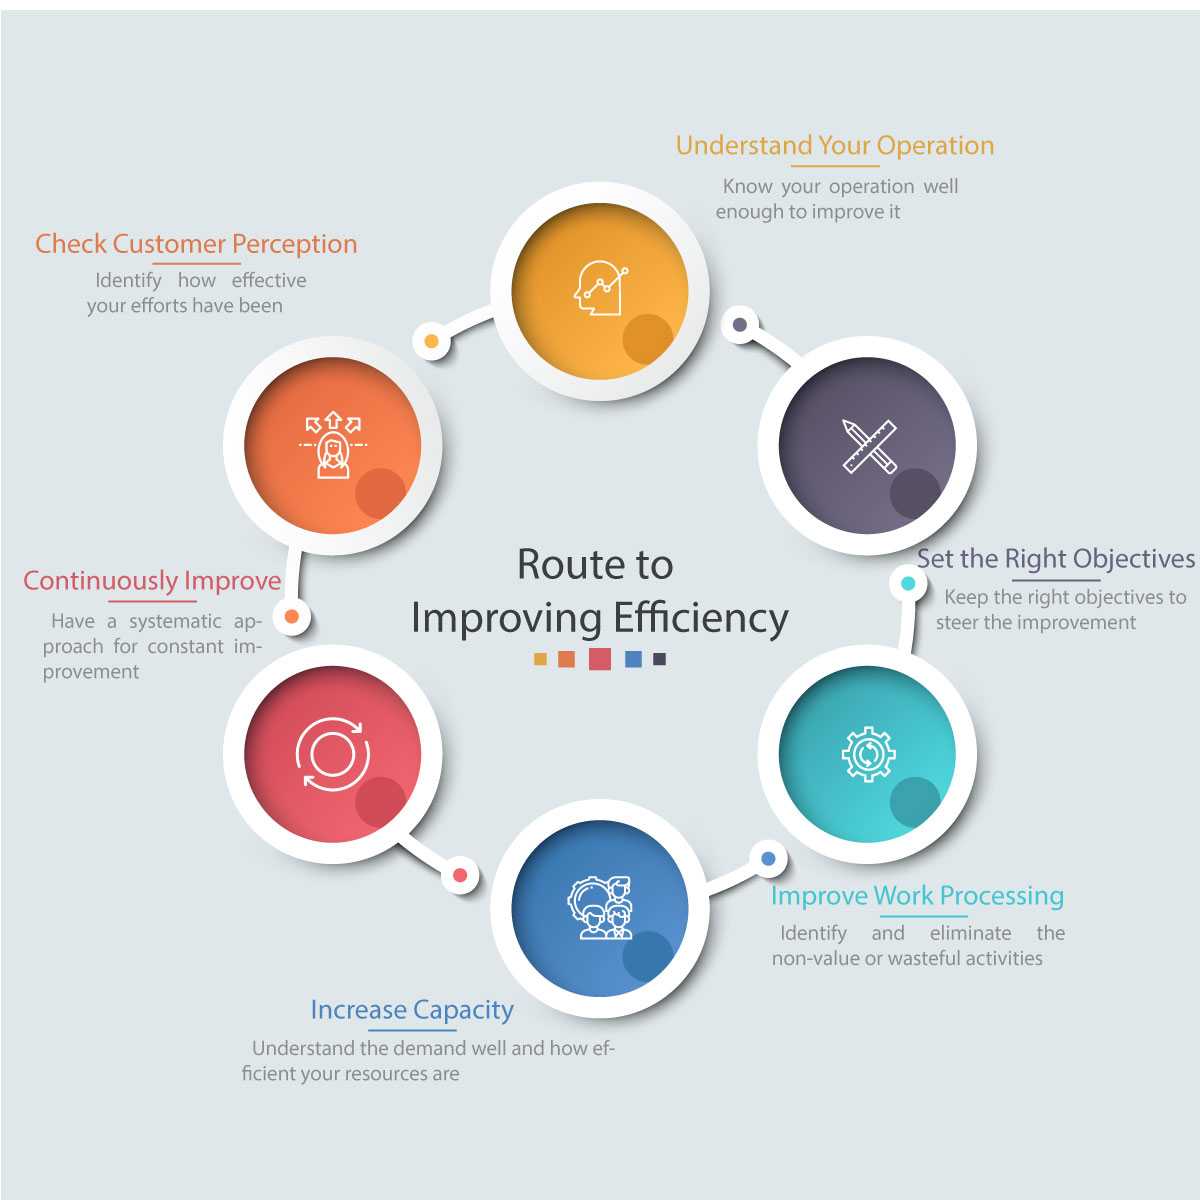 Learn the Six Steps Route to Improving Efficiency Infographic